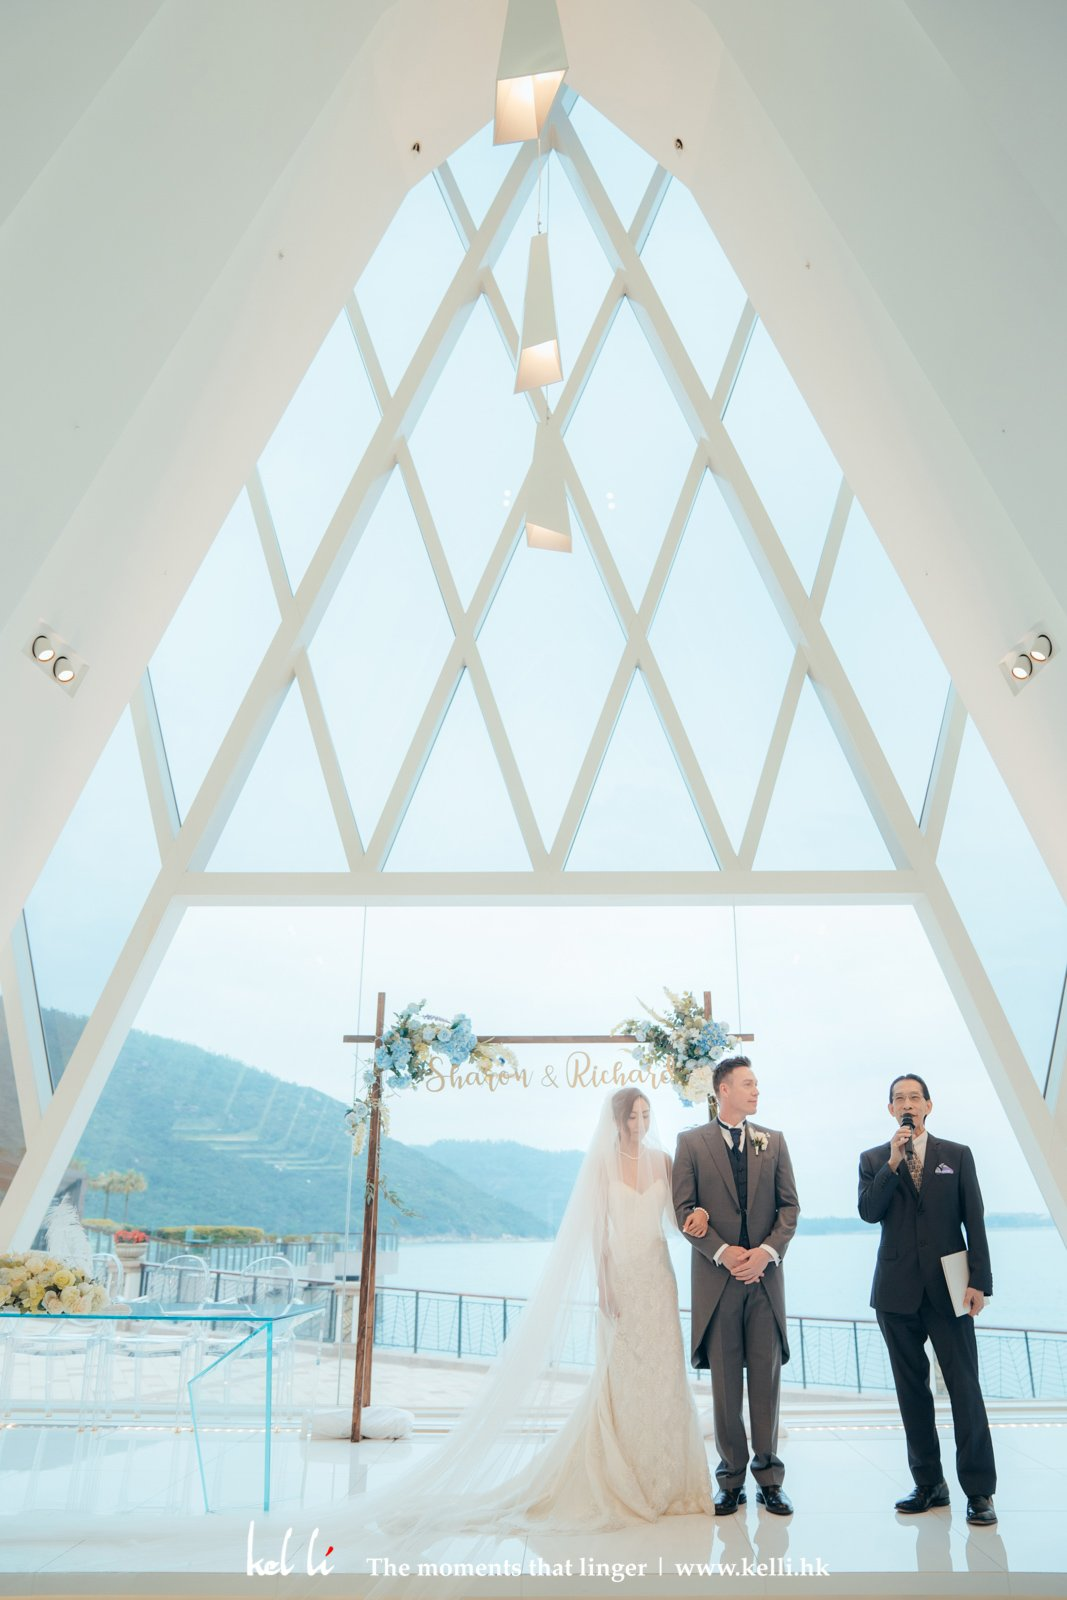 海濱白教堂的證婚議式 | HK White Chapel Wedding Ceremony